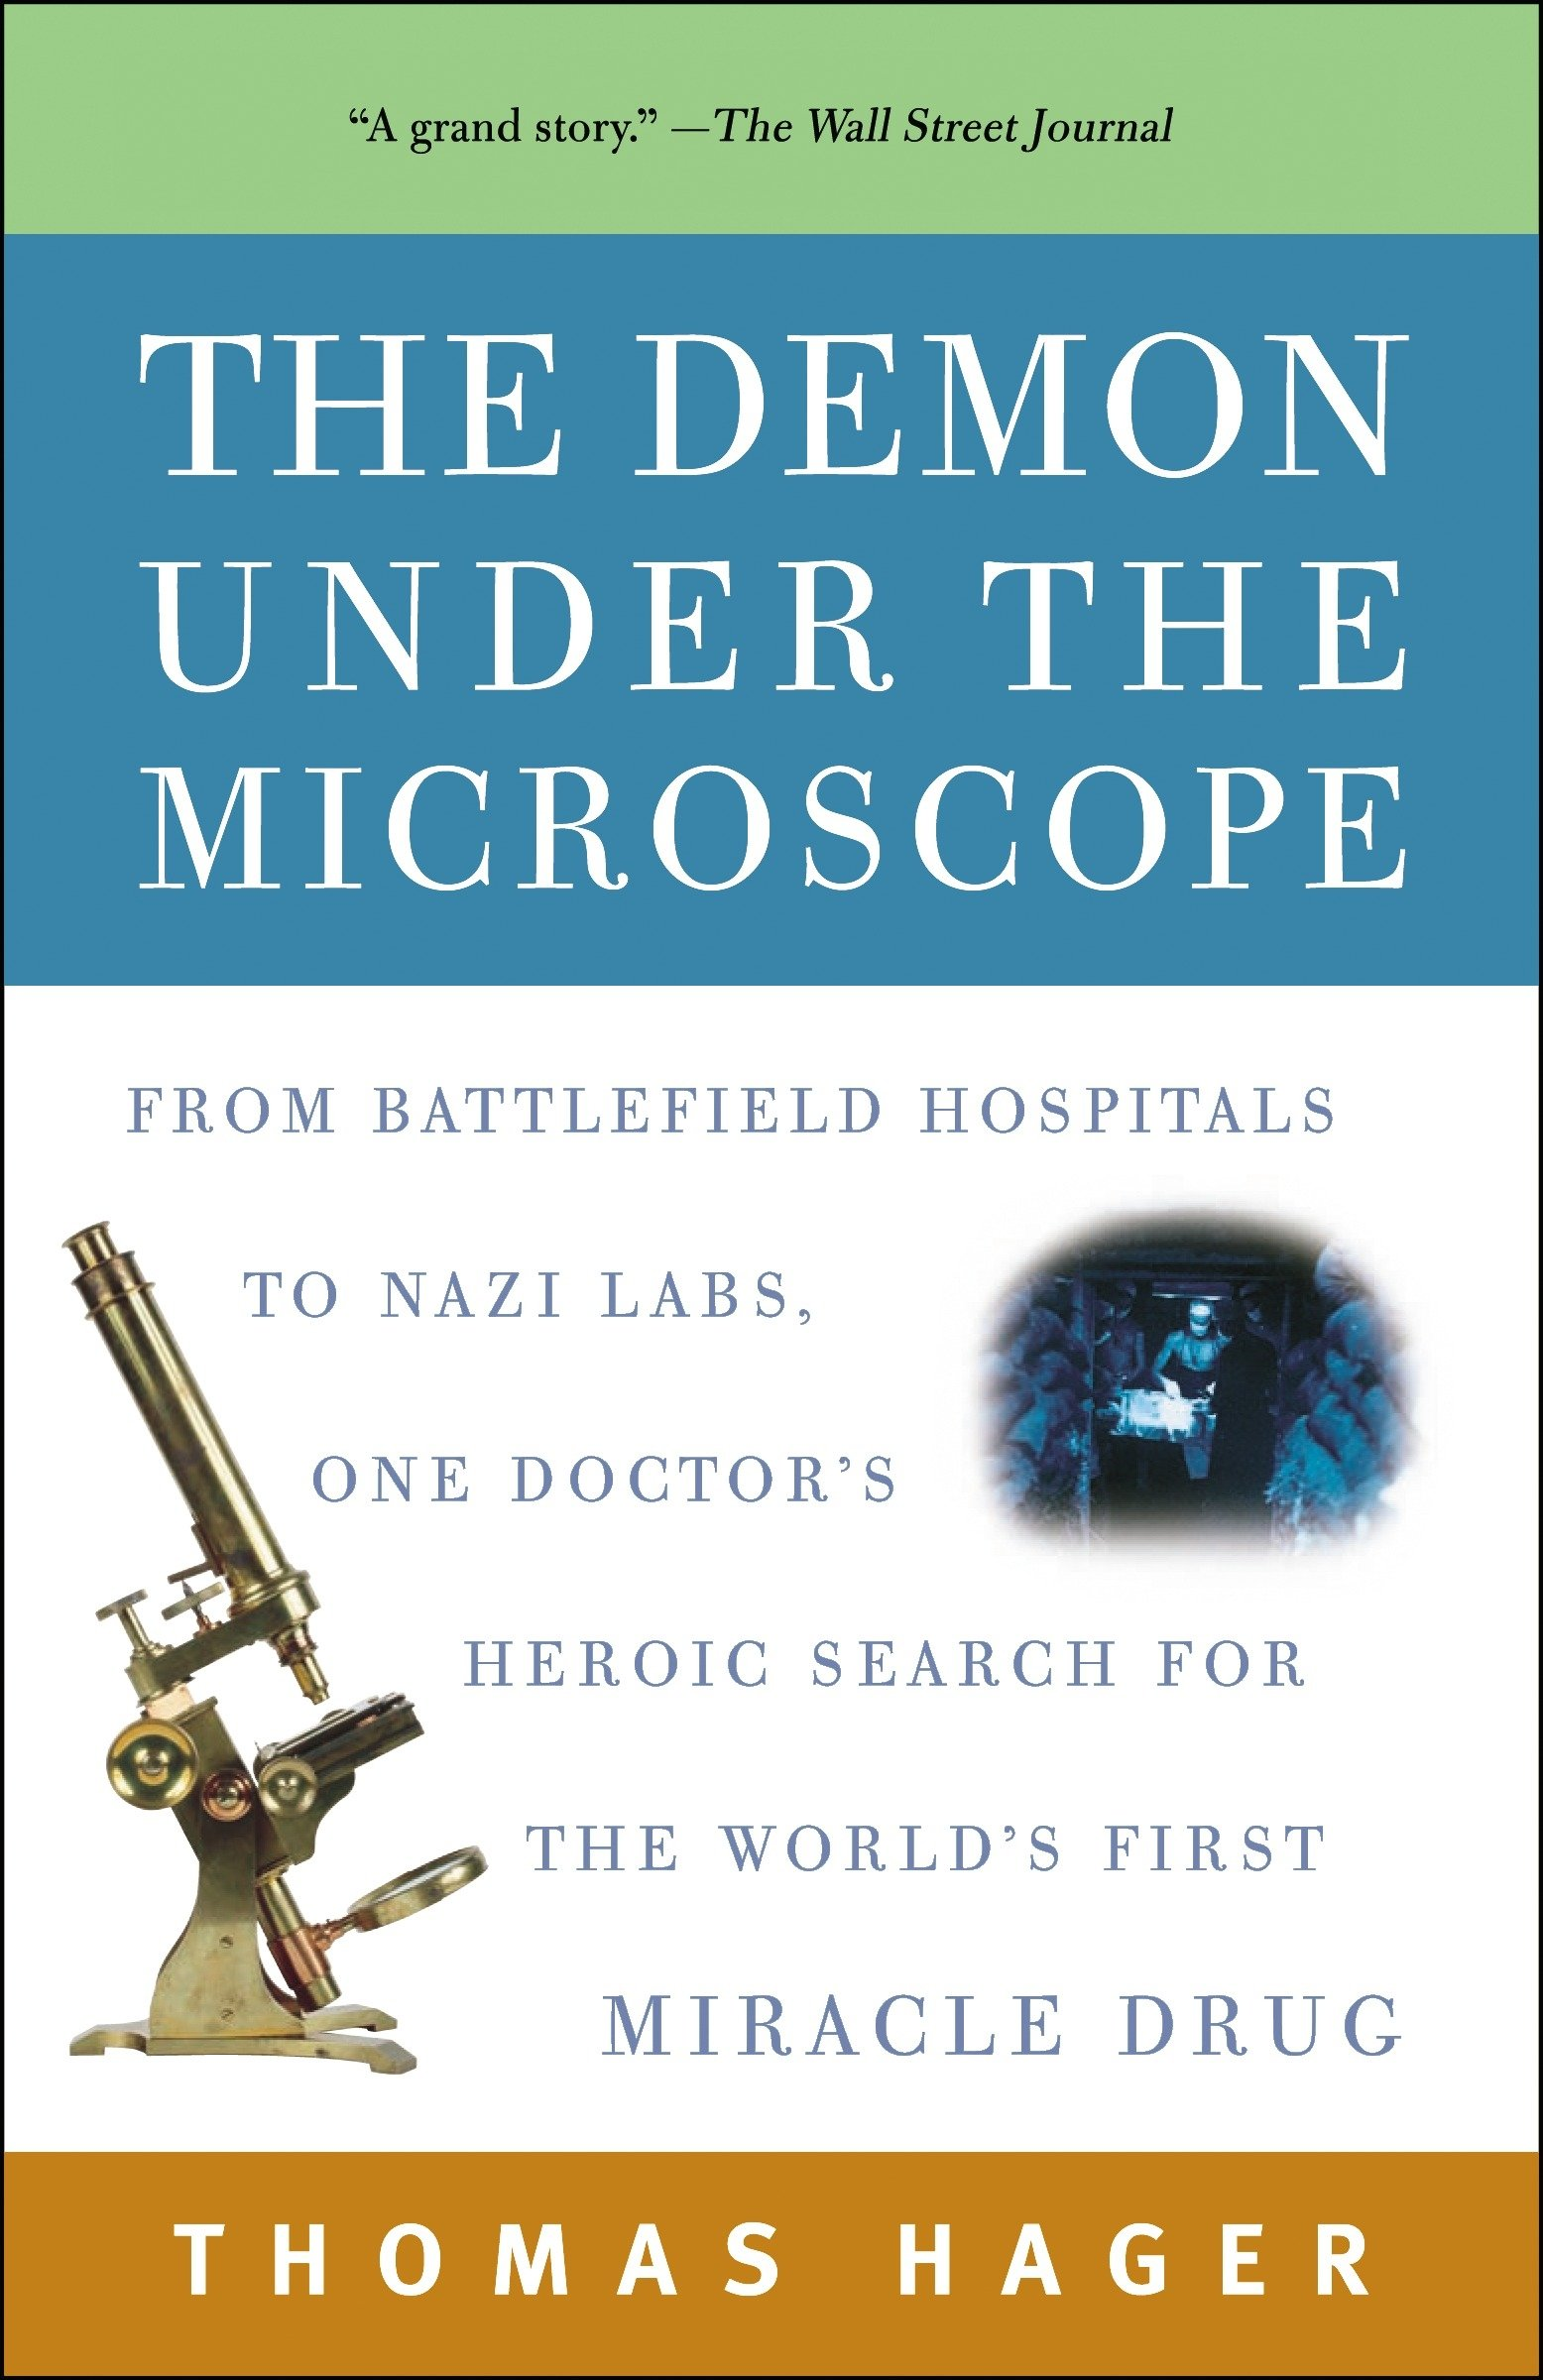 the-demon-under-the-microscope-from-battlefield-hospitals-to-nazi-labs-one-doctor-s-heroic-search-for-the-world-s-first-miracle-drug